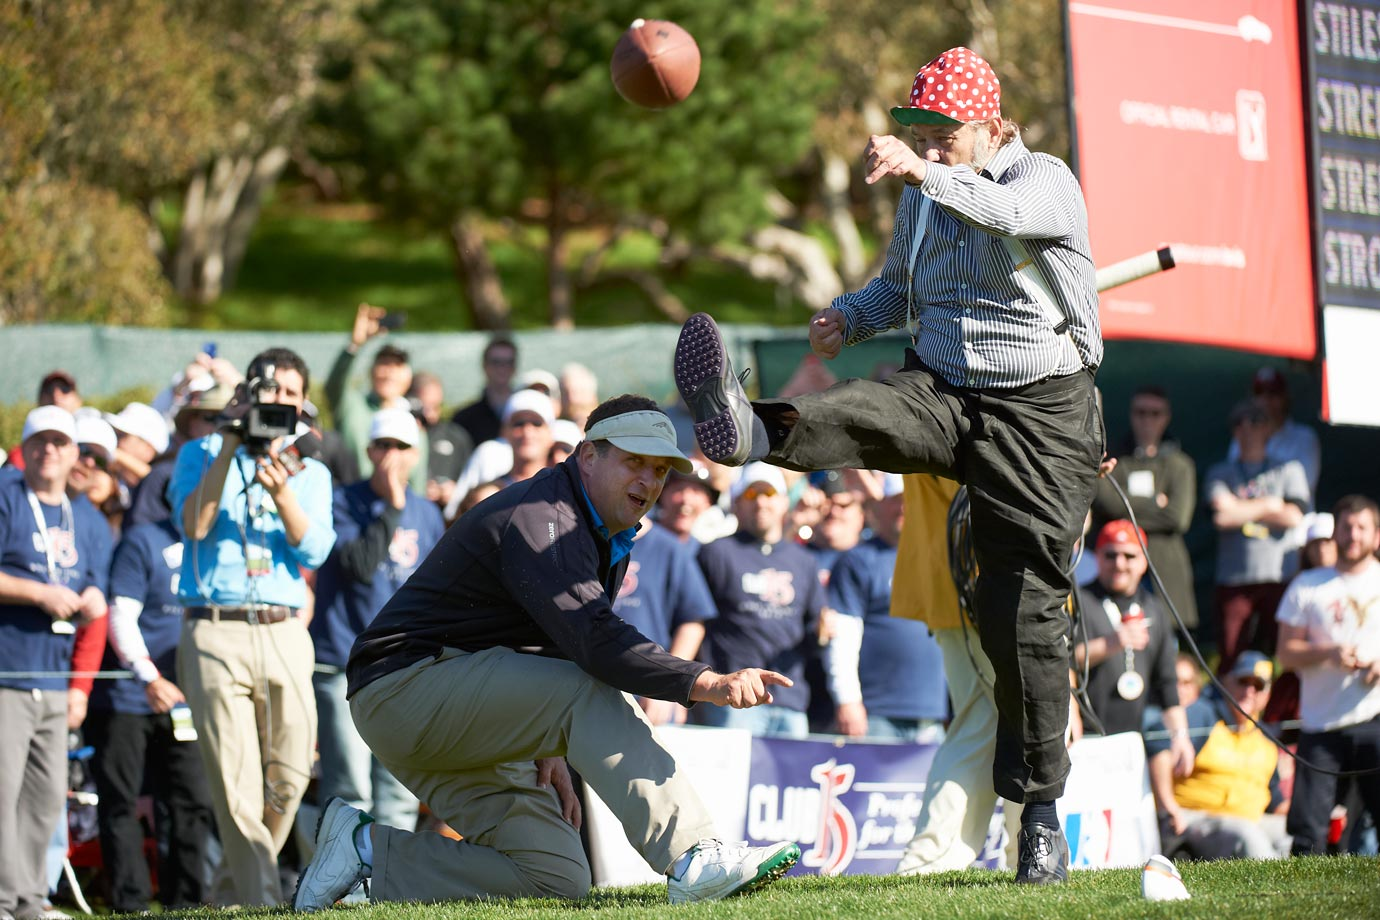 Bill Murray kicks a football with Harris Barton holding the ball during during the AT&T Pebble Beach National Pro-Am golf tournament on Feb. 9, 2013 in Pebble Beach, Calif.